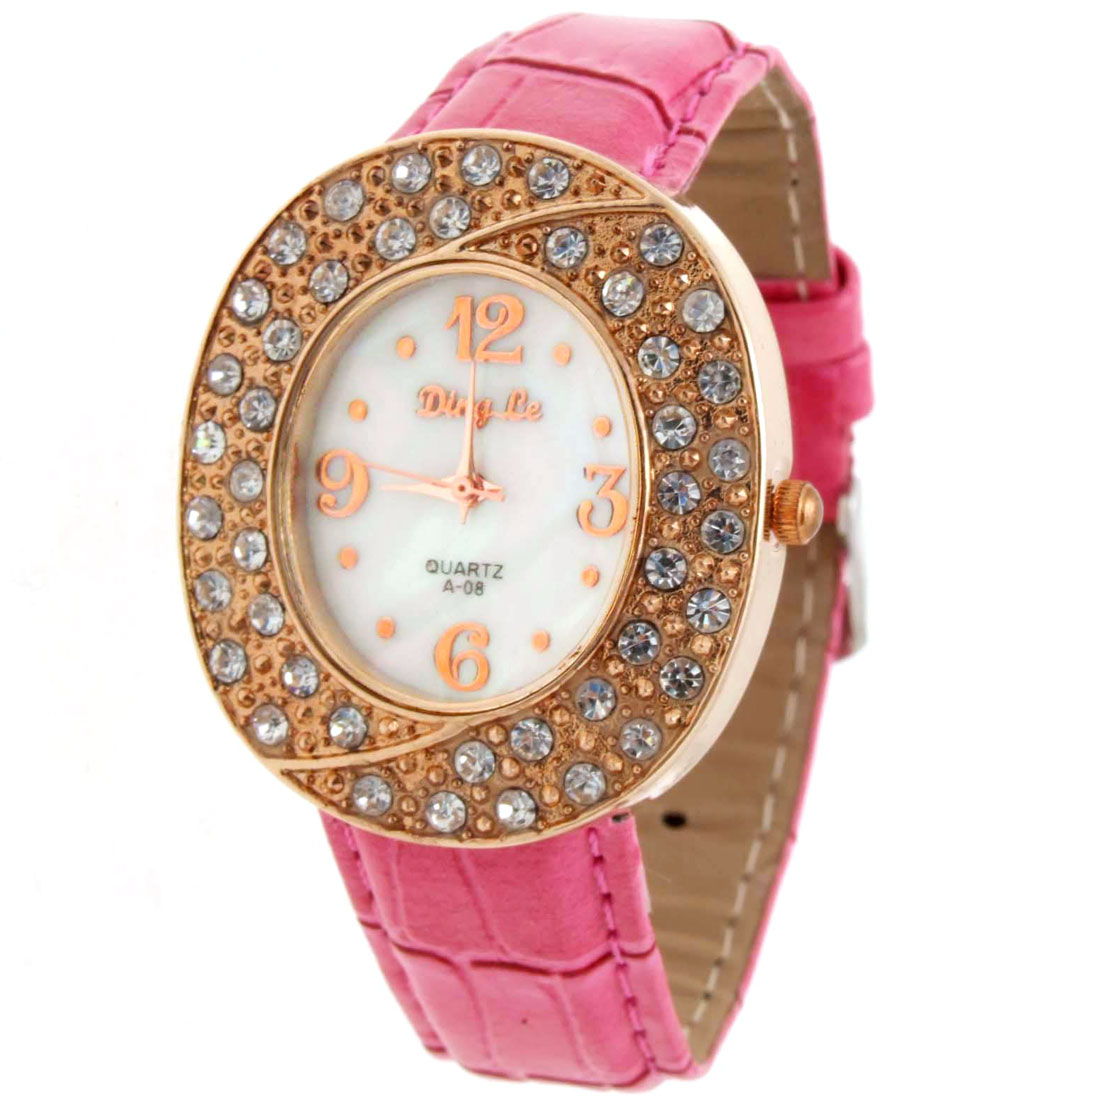 Fashion Jewelry Fashionable Simulated Crystal Wristwatch